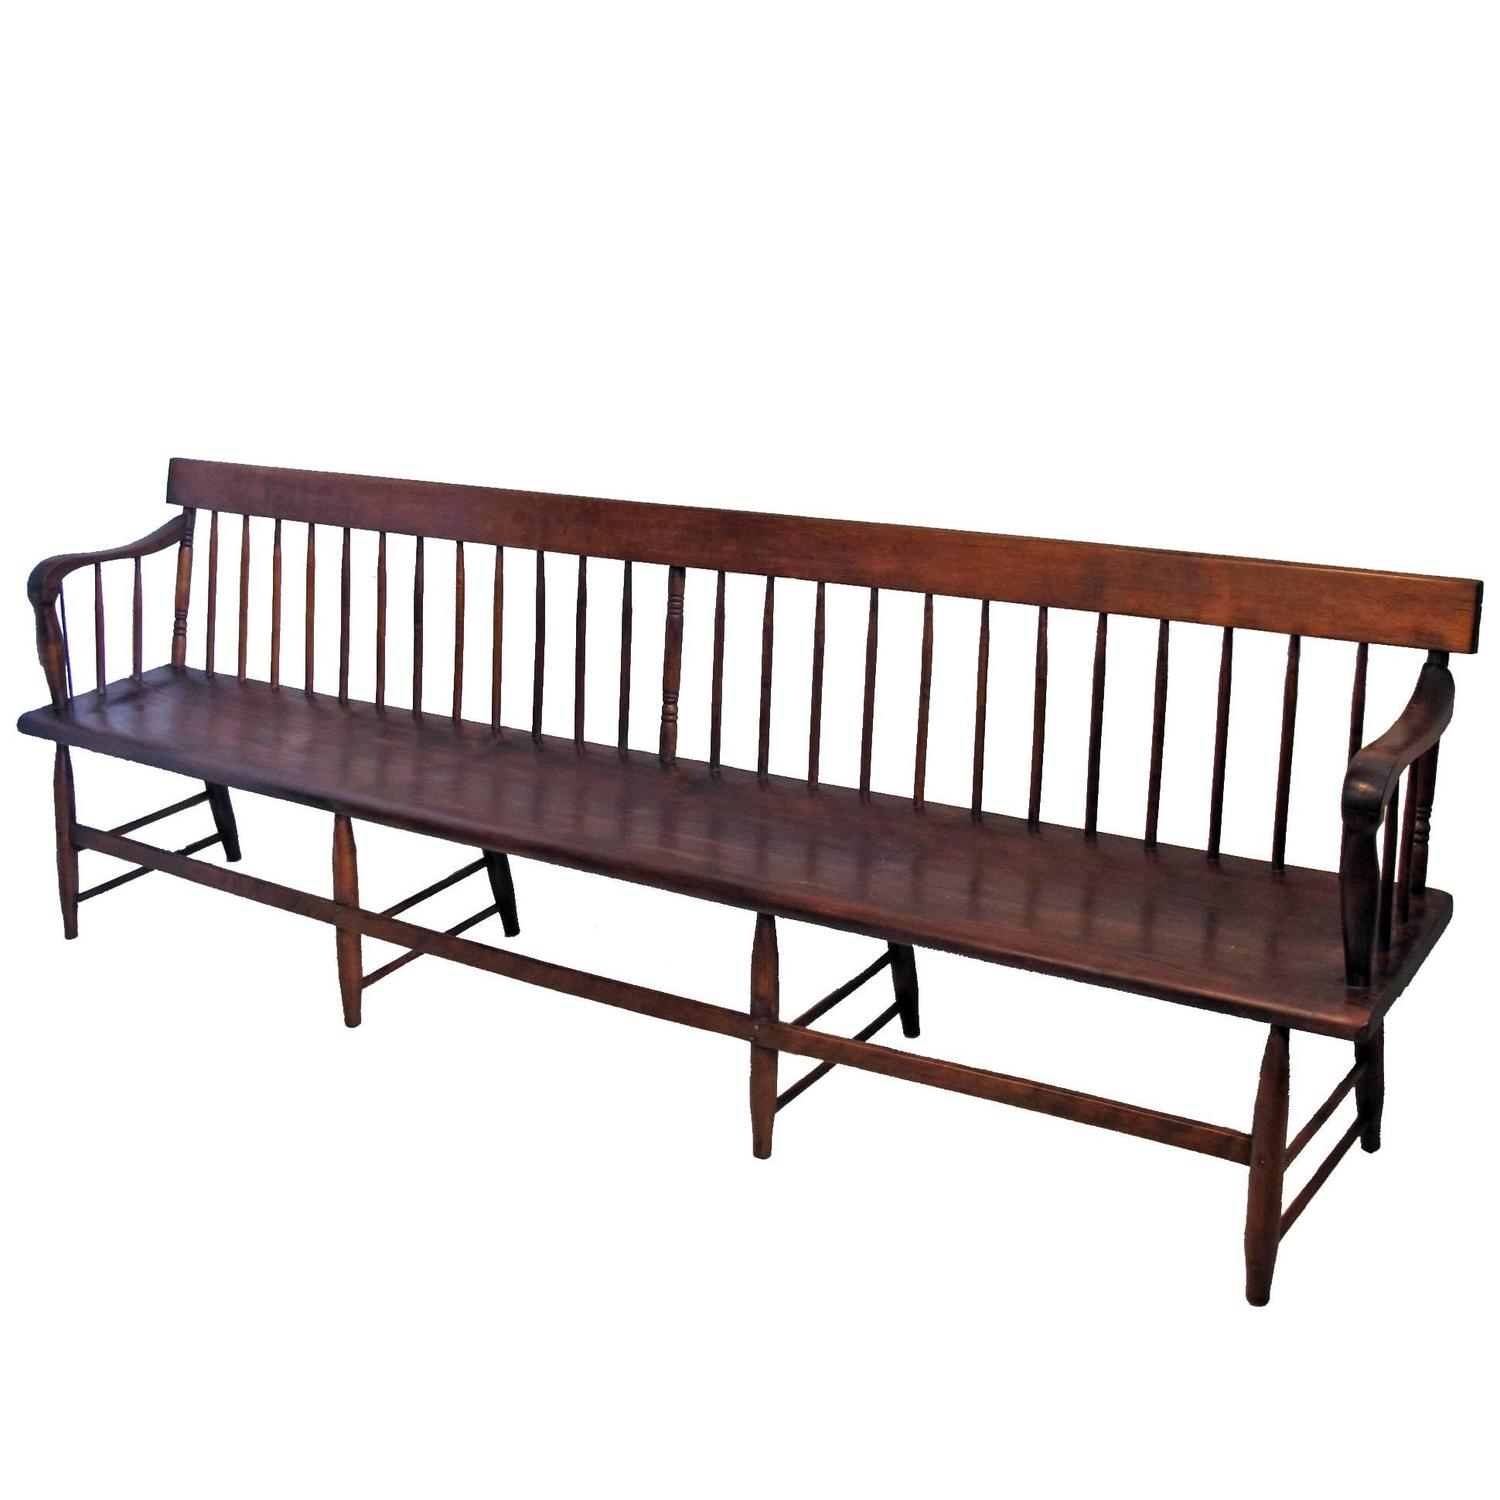 Extraordinary Pine And Mixed Wood Spindle Back Bench American 19th Century For Sale At 1stdibs